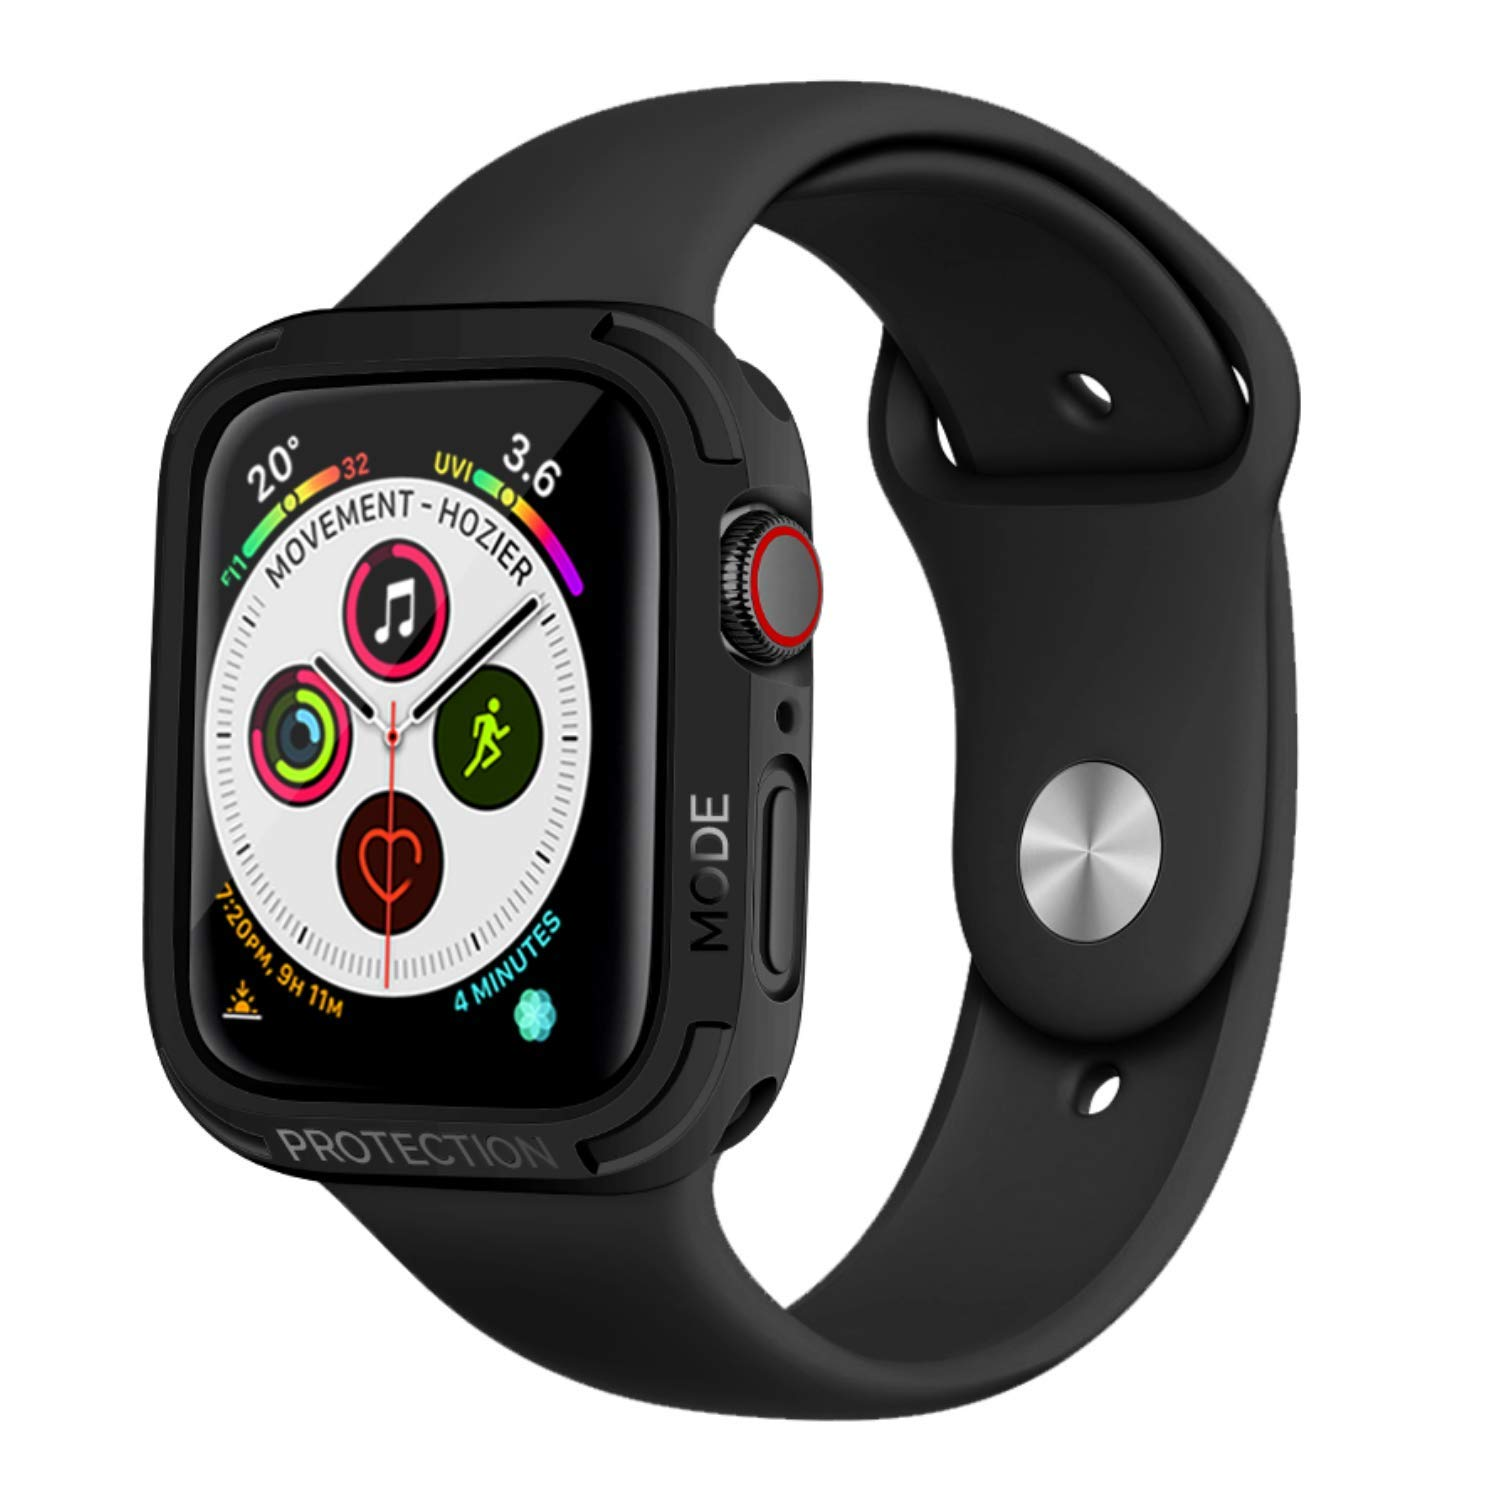 elkson Apple Watch Series 4 5 Bumper case 44mm iwatch Quattro Series Cases Protection Compatible with Apple Watch Durable Military Grade Black TPU Flexible Shock Proof Resist - 44mm Stealth Black by elkson